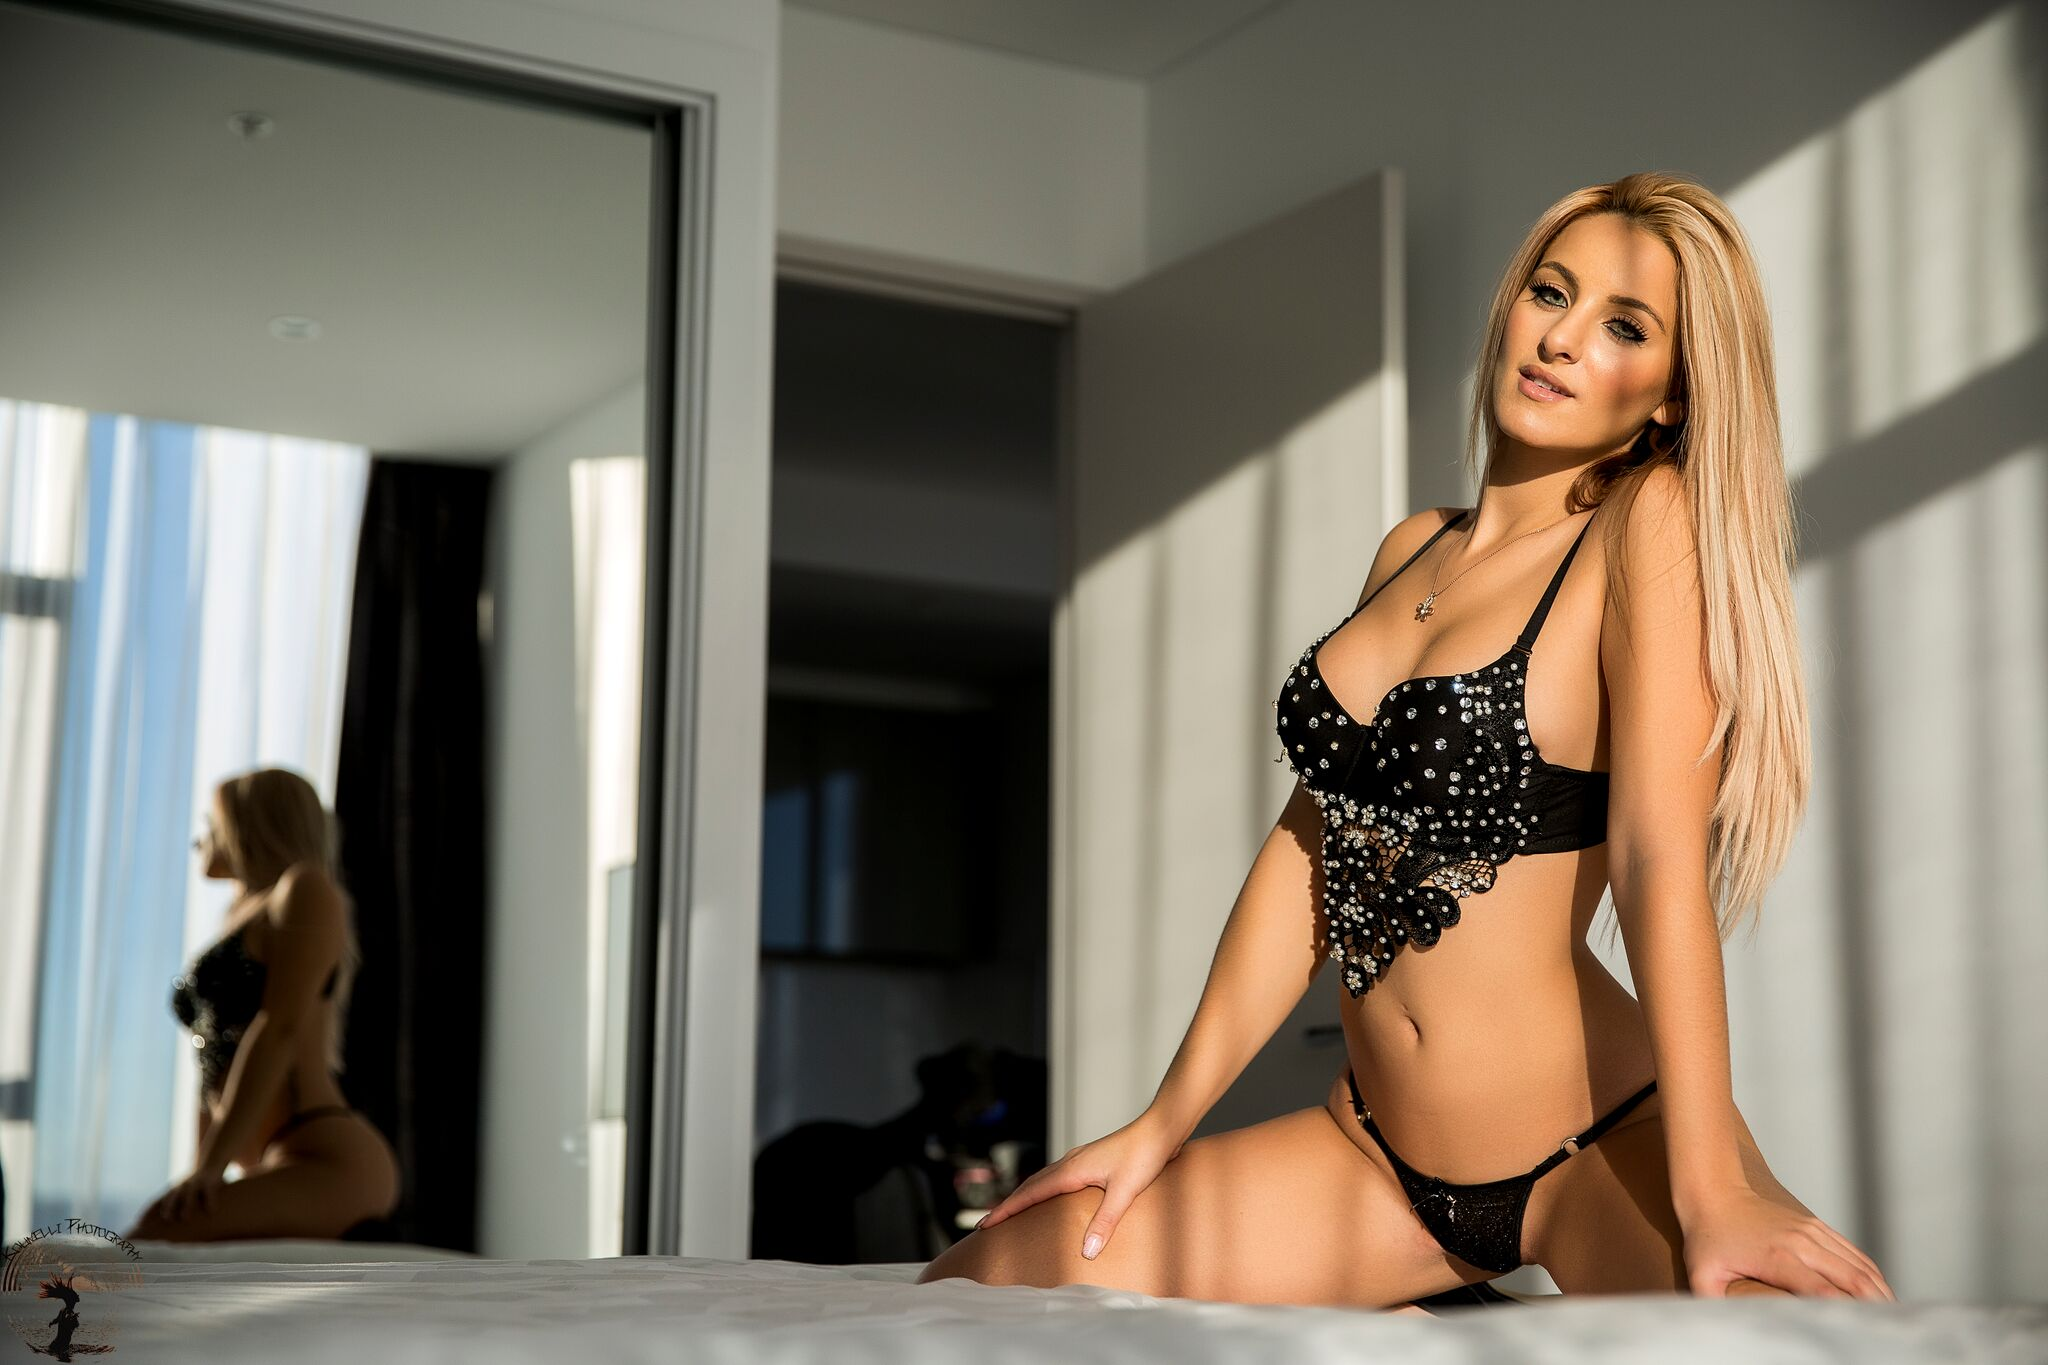 What Are The Best Strippers In Sydney?